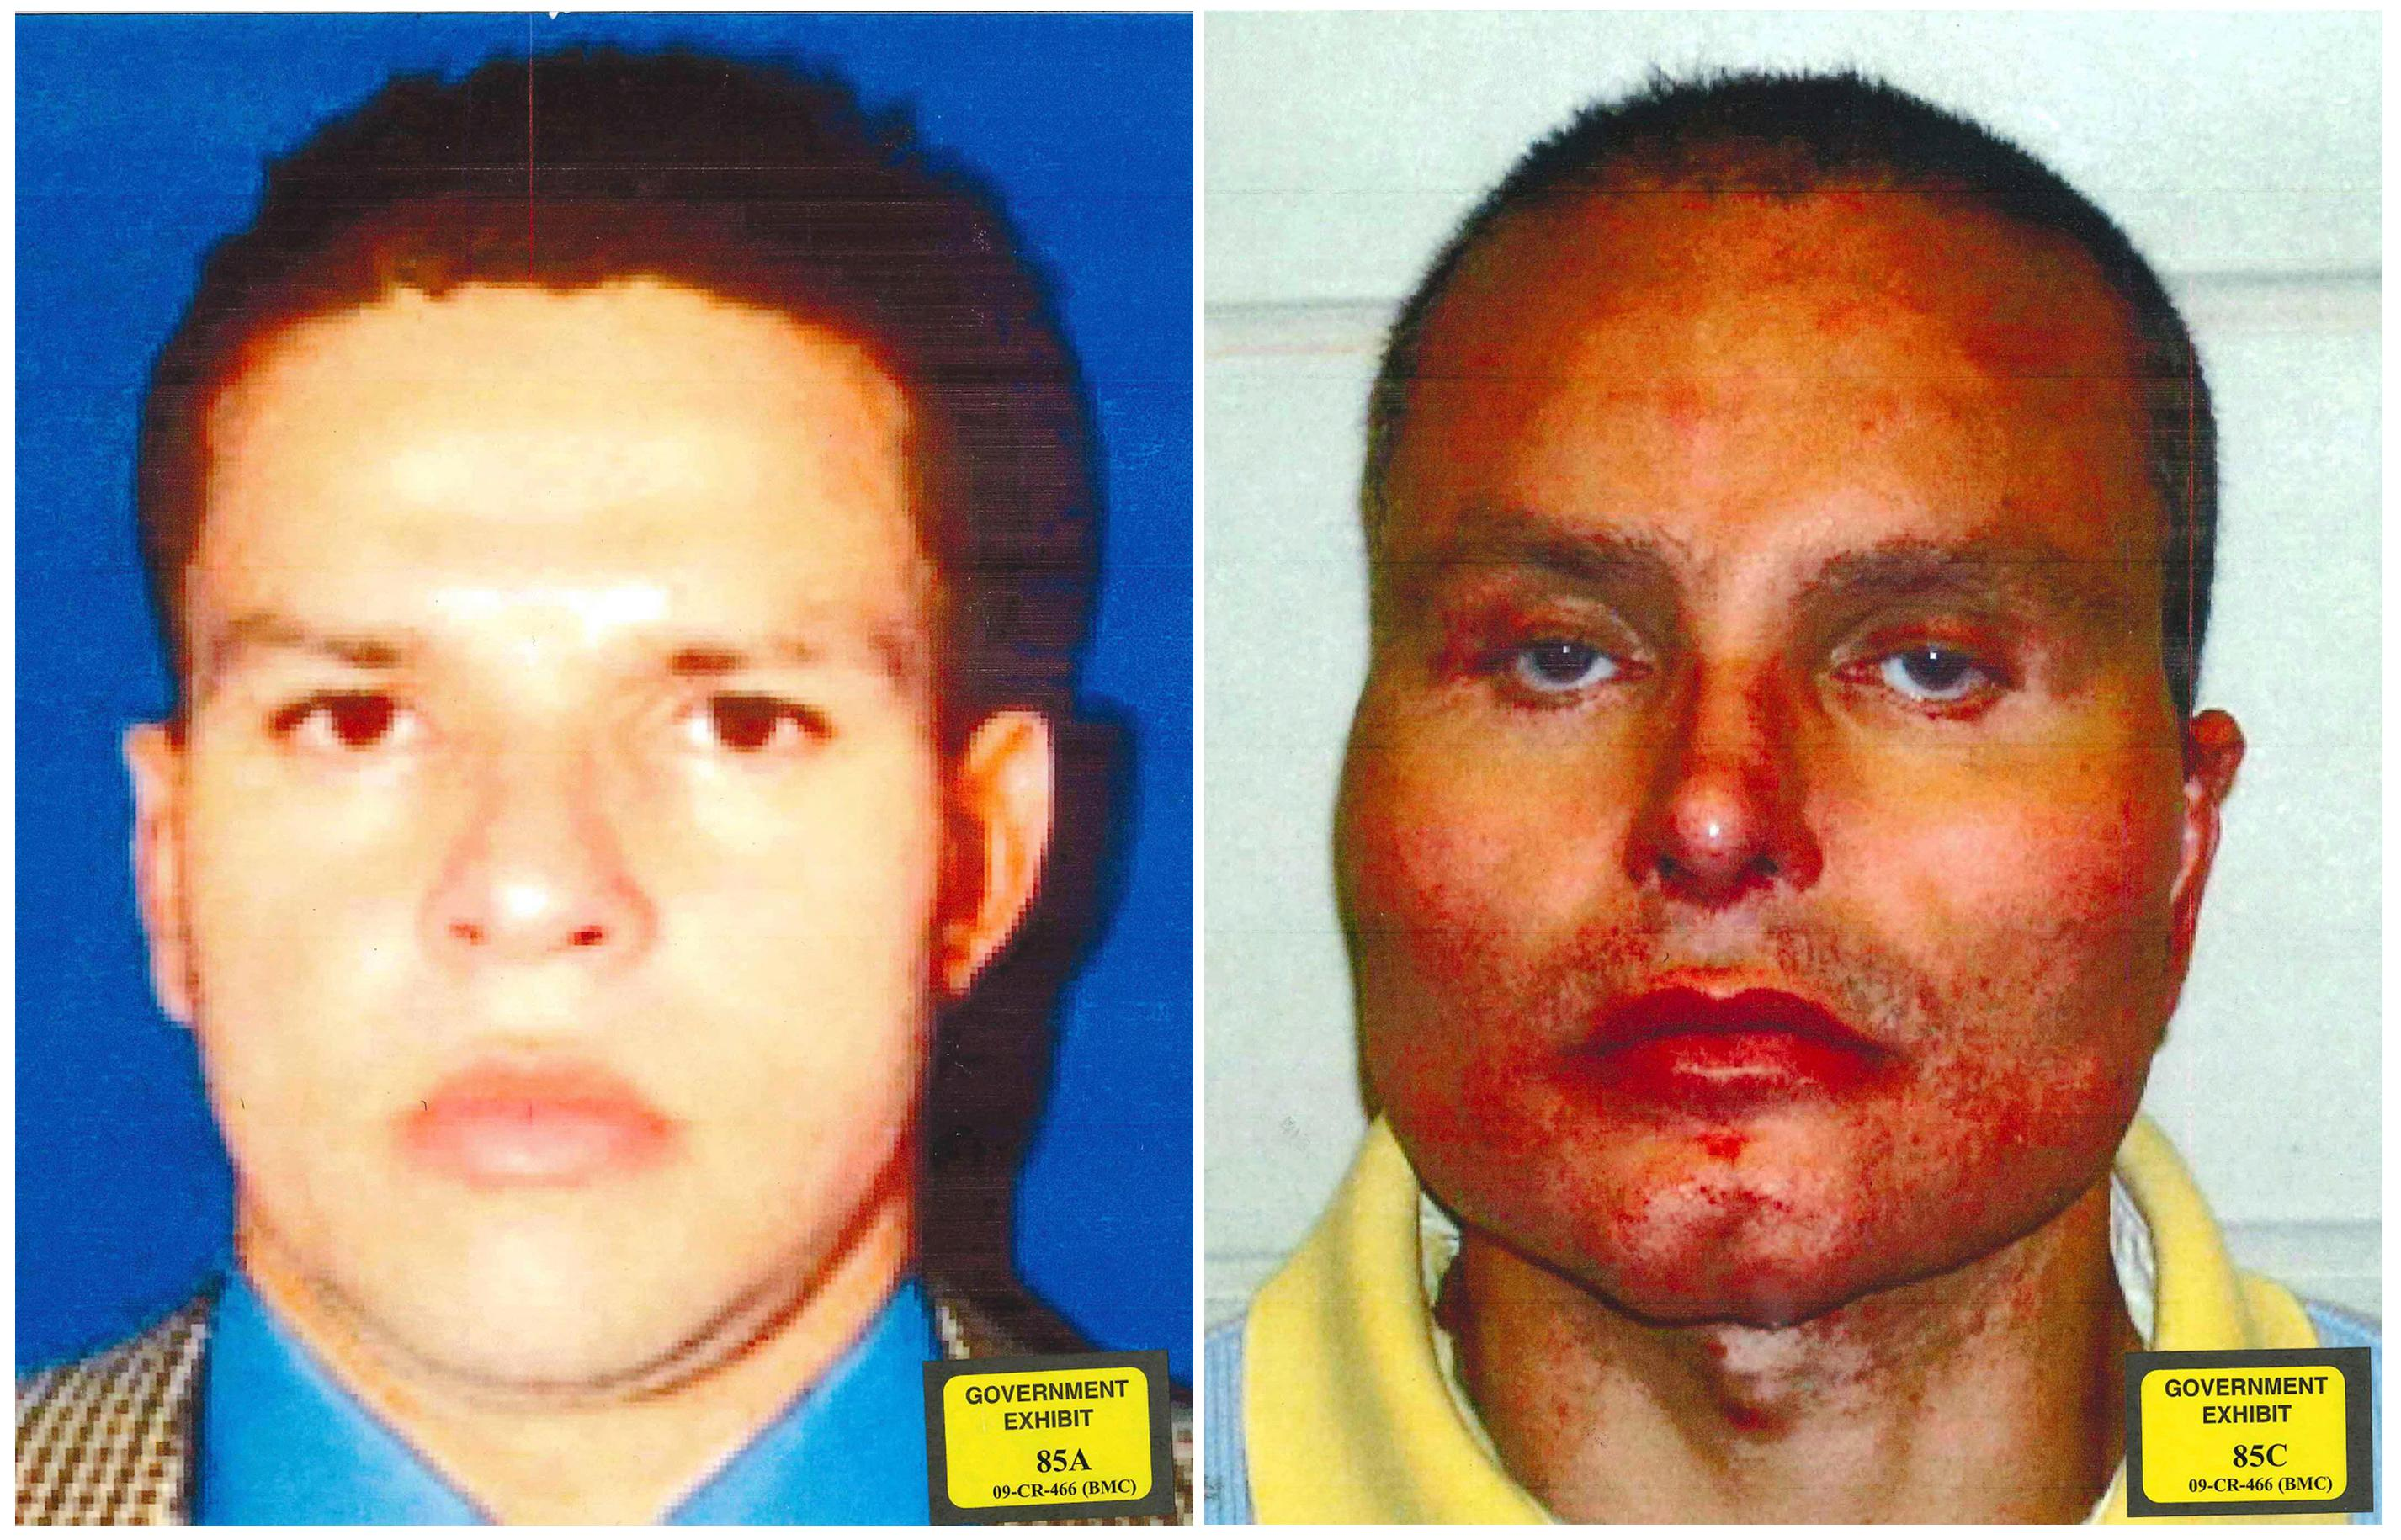 "This combination of undated photos provided by the U.S. Attorney's Office for the Southern District of New York shows former Colombian drug lord Juan Carlos Ramirez Abadia. The latest star witness for the government in the trial against accused drug lord Joaquin ""El Chapo"" Guzman has been more notable for his appearance than his testimony. Ramirez Abadia told the jury that he had at least three surgeries to change his appearance. The photo at left shows Ramirez Abadia prior to his surgeries and the photo at right is post-surgery. (U.S. Attorney's Office for the Southern District of New York via AP)"